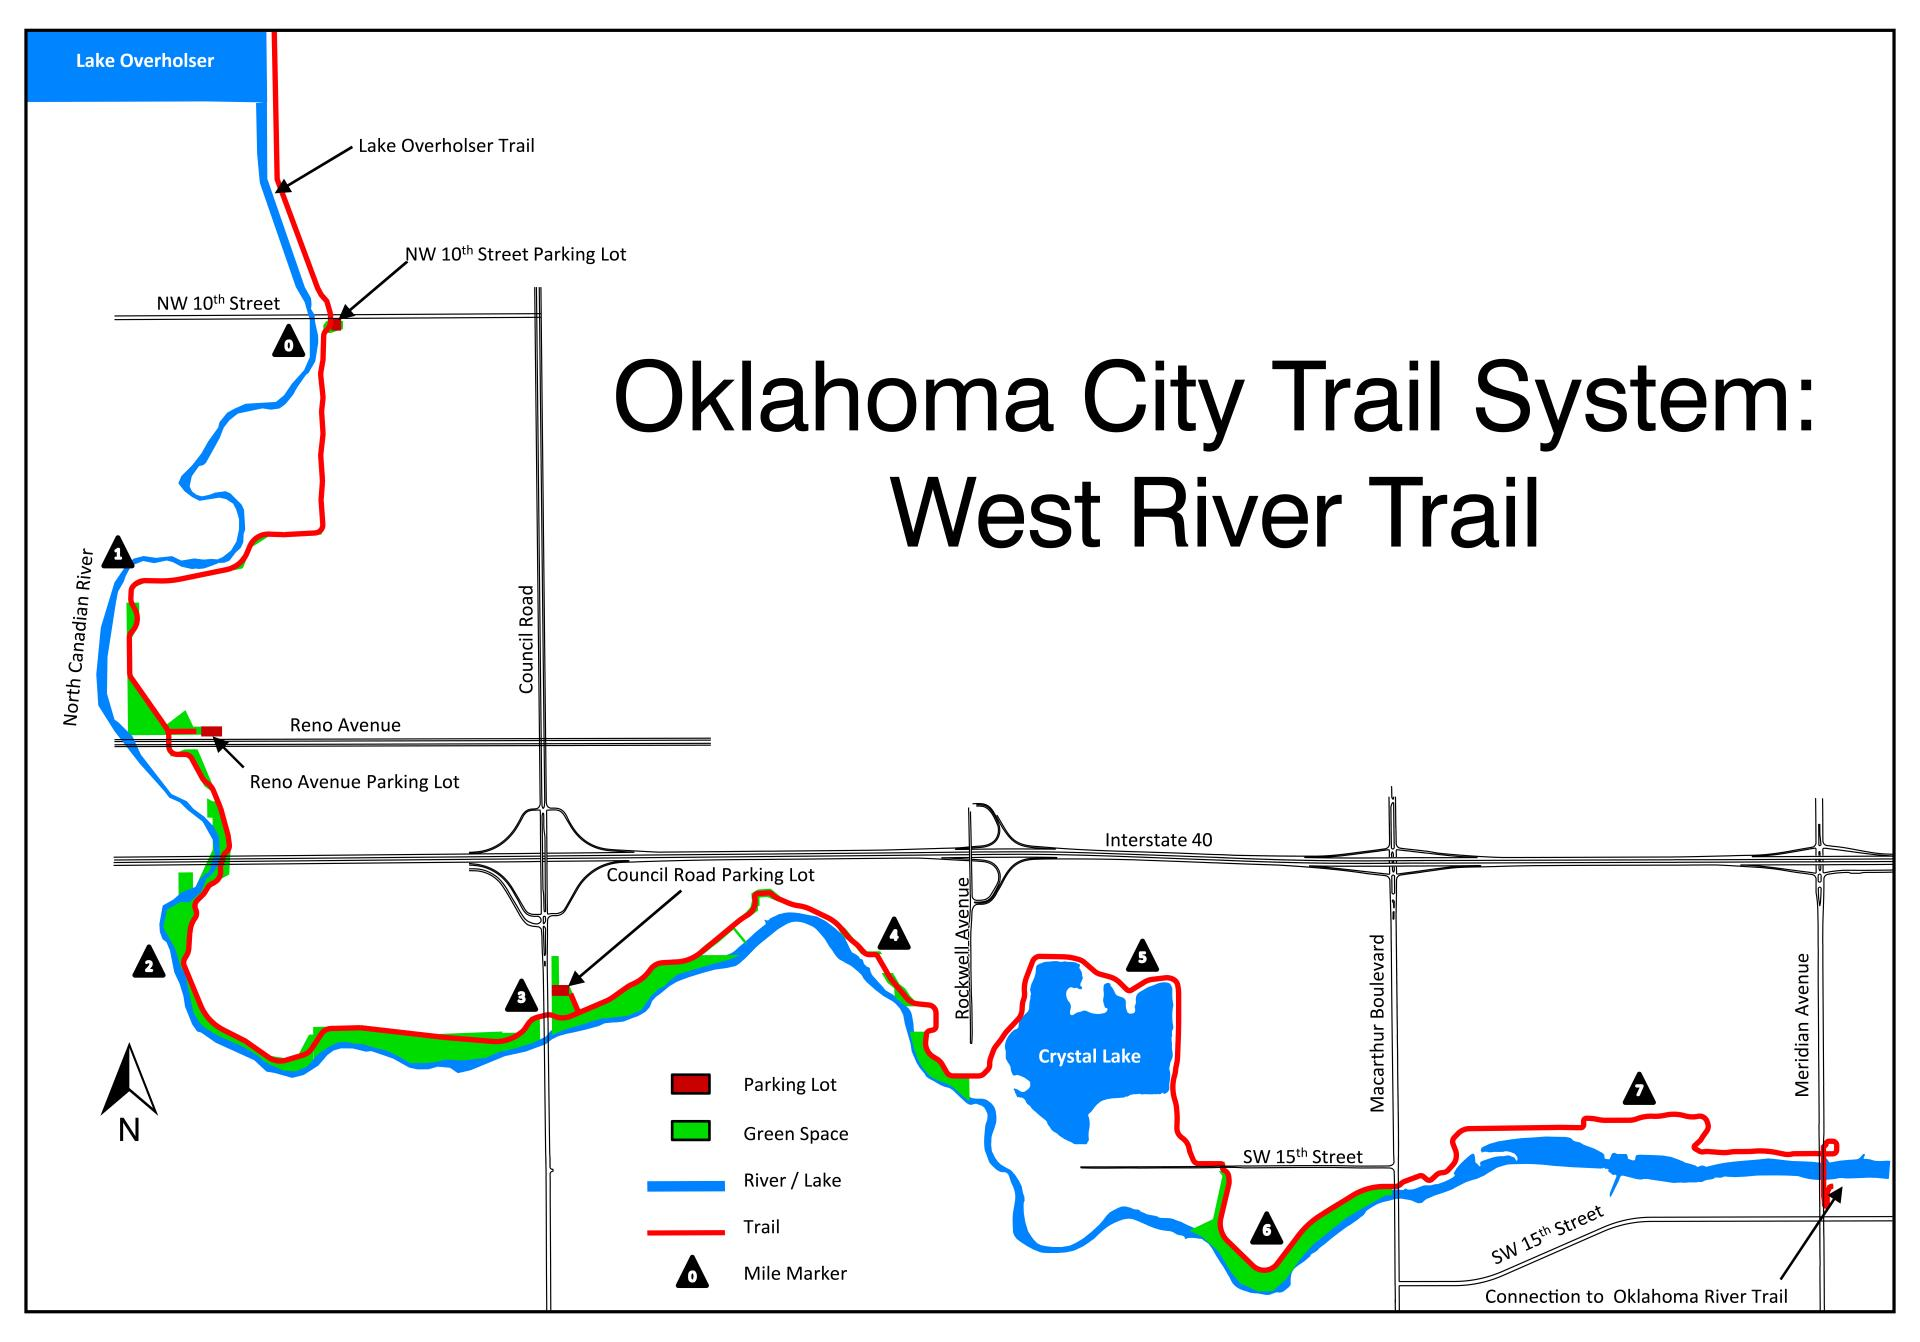 MAPS 3 Interstate 44 West Trail route set | News | City of OKC I Oklahoma Road Map on oklahoma county maps and highways, oklahoma voting districts, oklahoma turnpike maps and rates, york pa street map, arkansas highway road conditions map, oklahoma i-40 road conditions, us hwy 67 map, oklahoma fairgrounds speedway, oklahoma grand lake casino, i-40 route map, national highway 40 map, choctaw ok city limits map, streets of waterloo ia map, u.s. route 40 map, us 40 map, oklahoma i-40 rest areas, new mexico i-40 map, show directions on a map, oklahoma fishing maps, i 40 texas map,